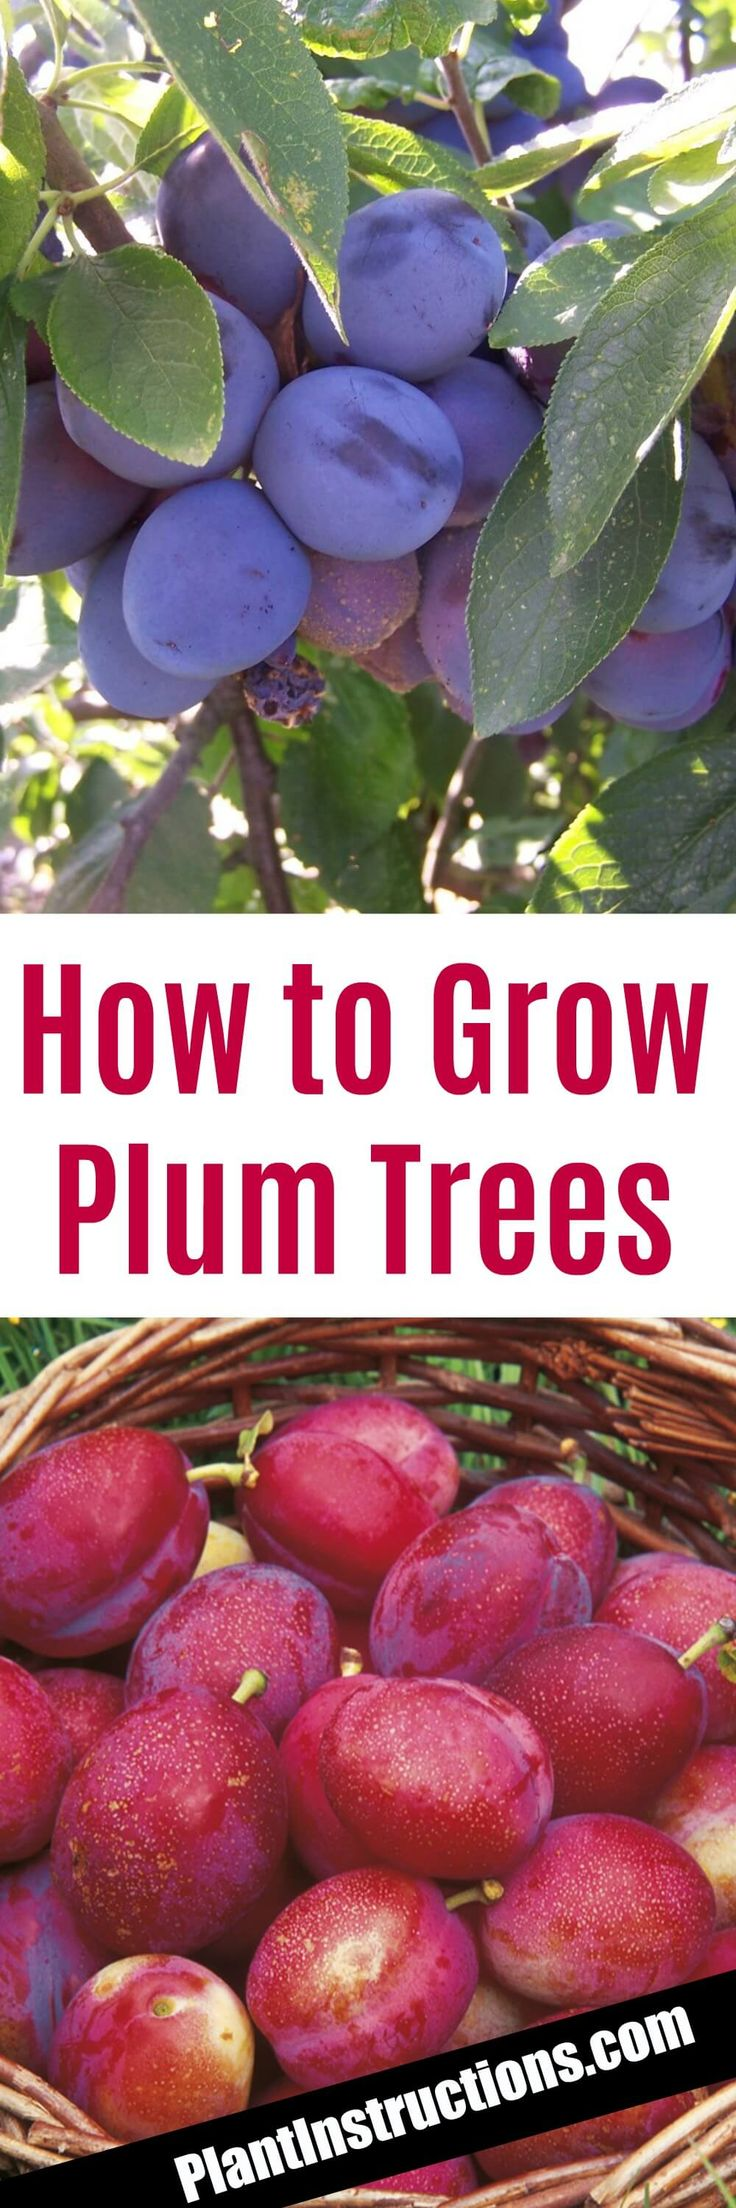 How to Grow Plum Trees